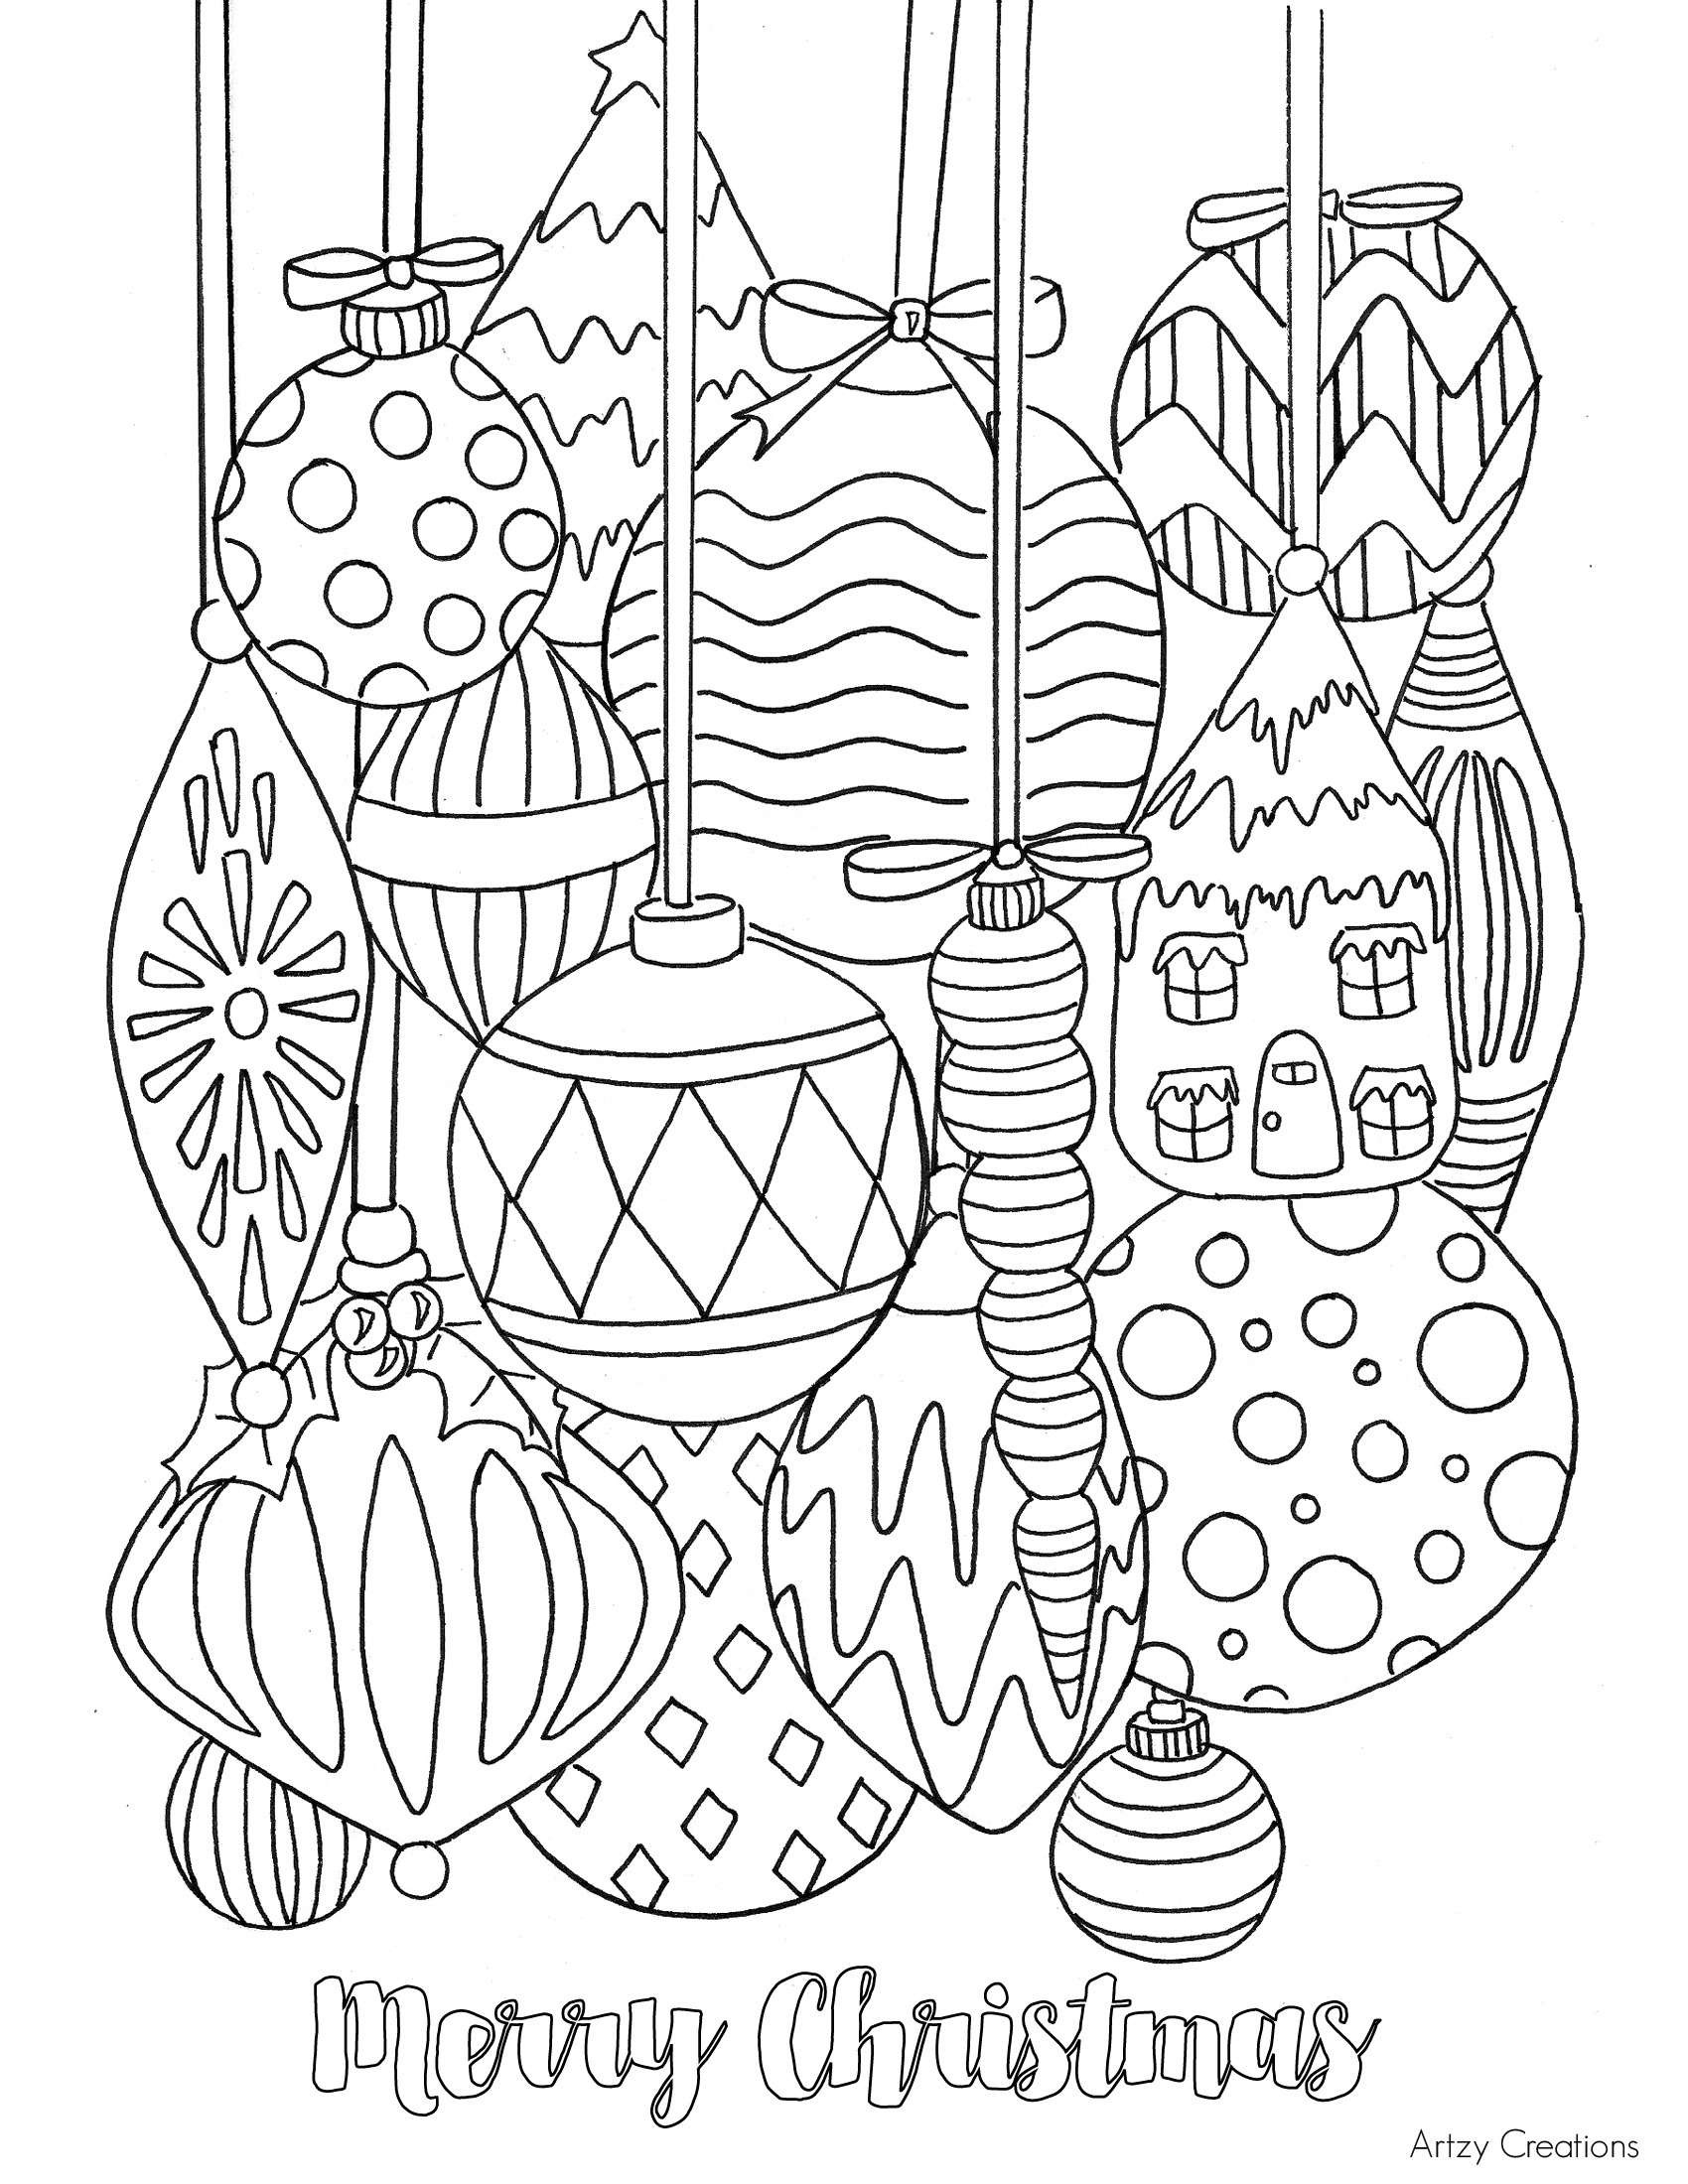 Christmas Coloring Esl With Free Worksheets For Middle School Printable